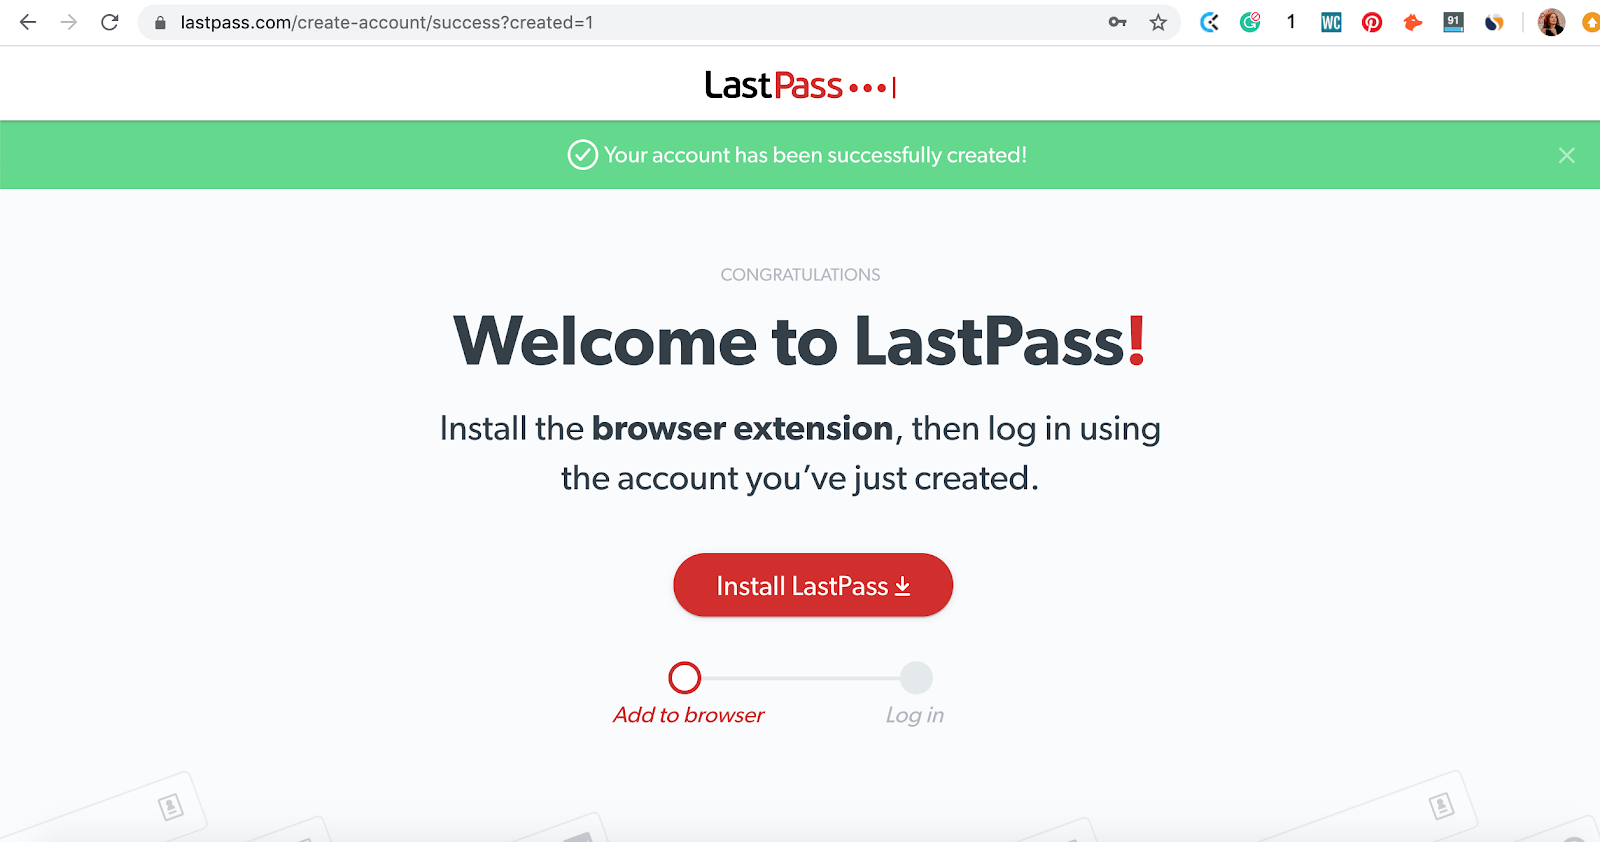 Creating free account on LastPass password manager app. Part of the article by Hana Clode Marketing 'LastPass Password Manager - Apps to Make Your Life Easier'.